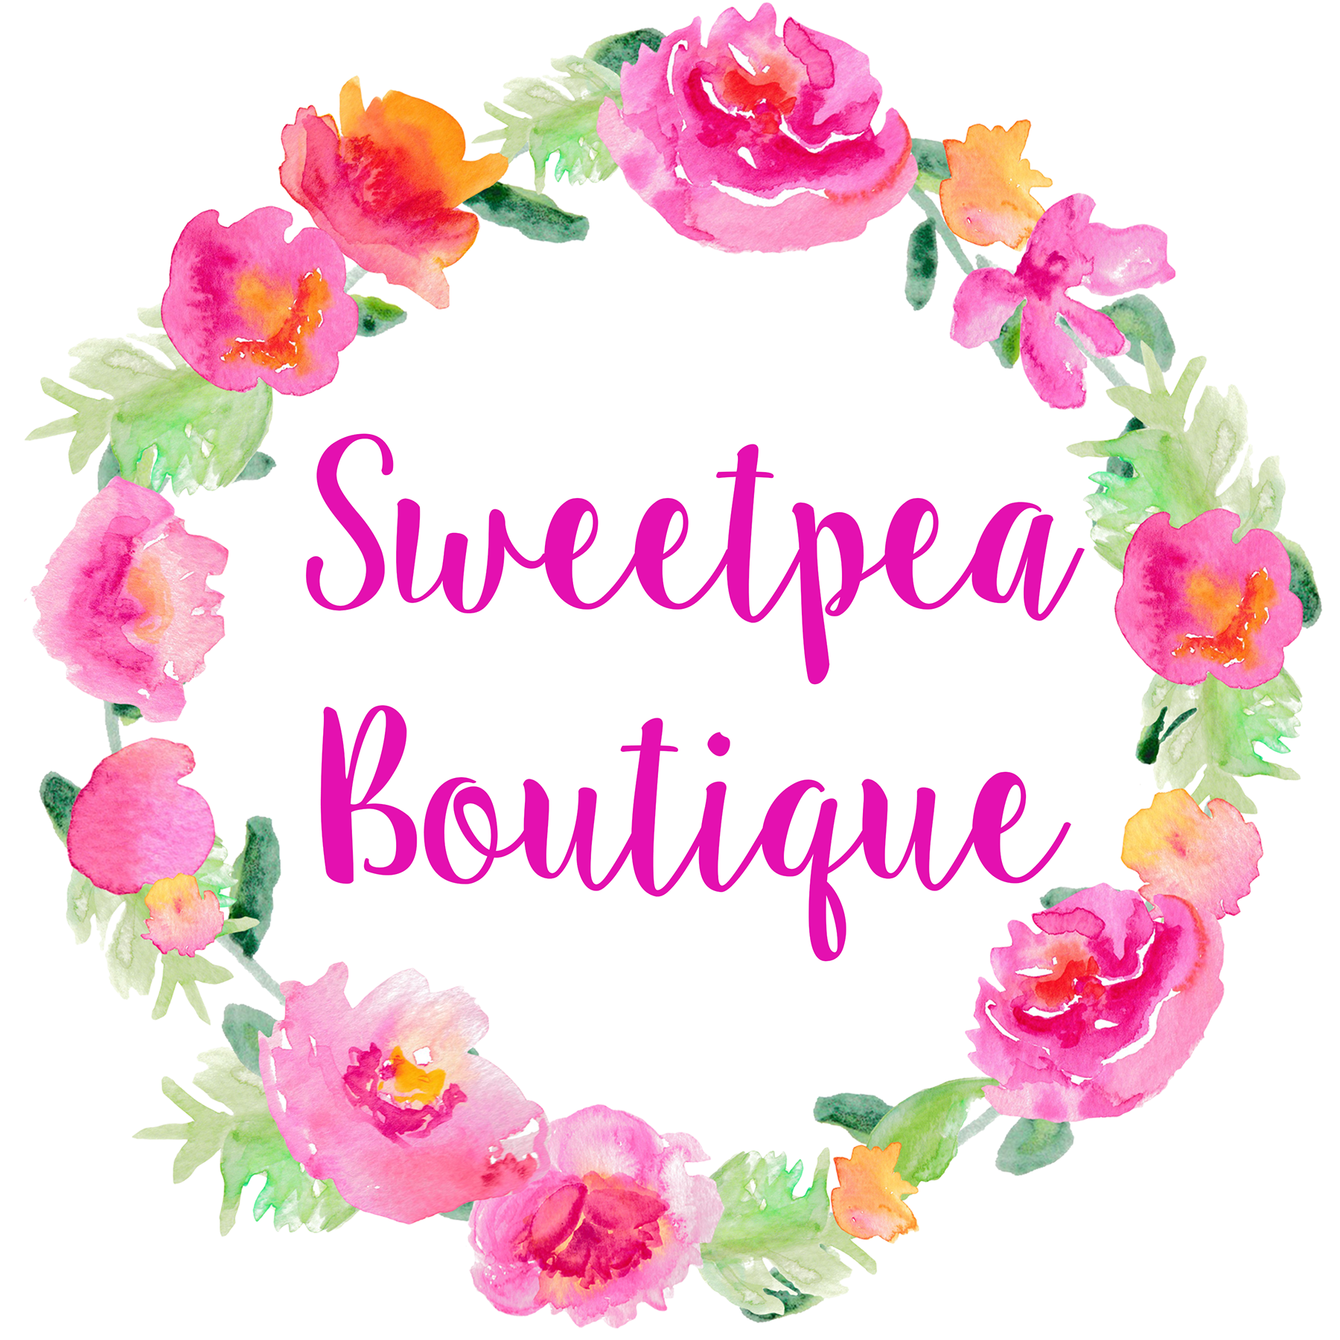 Sweetpea Boutique